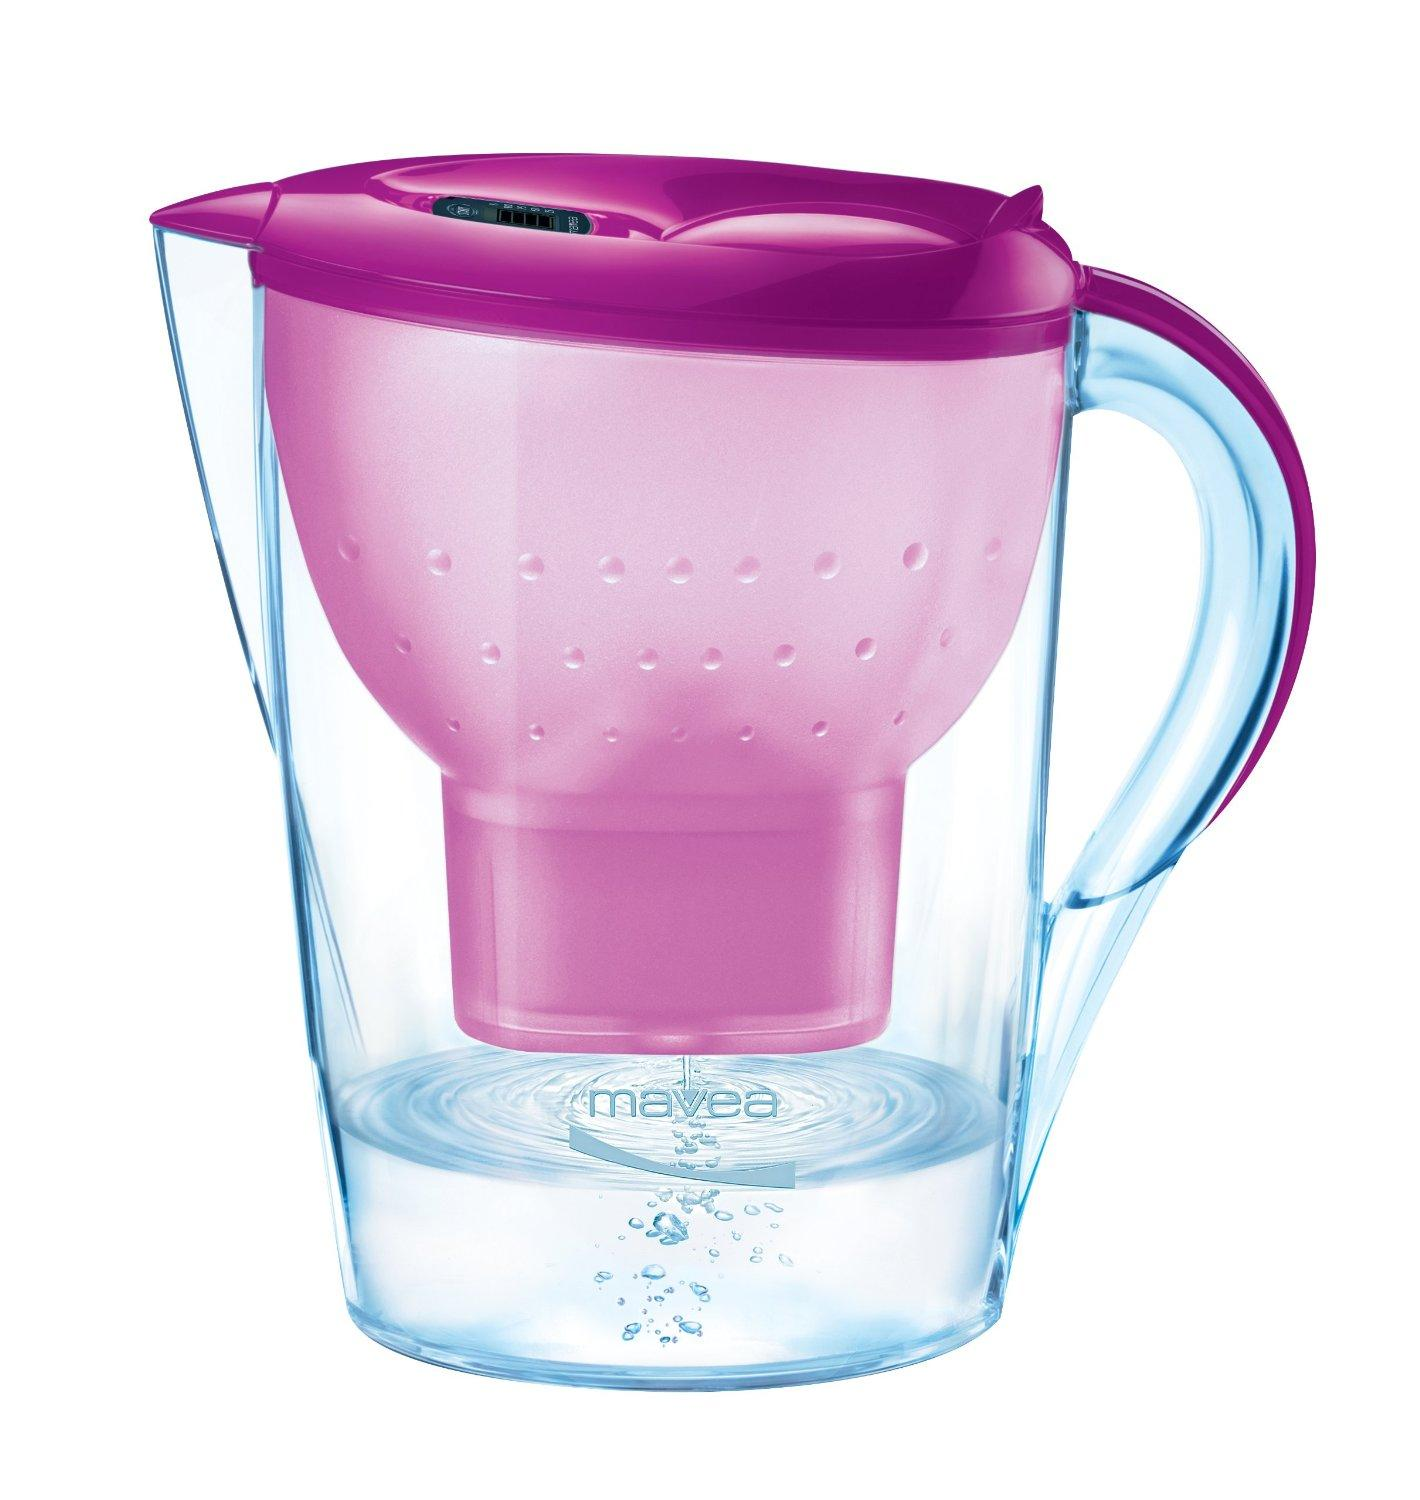 $19.99 MAVEA 1009652 Marella XL 8-Cup Water Filtration Pitcher